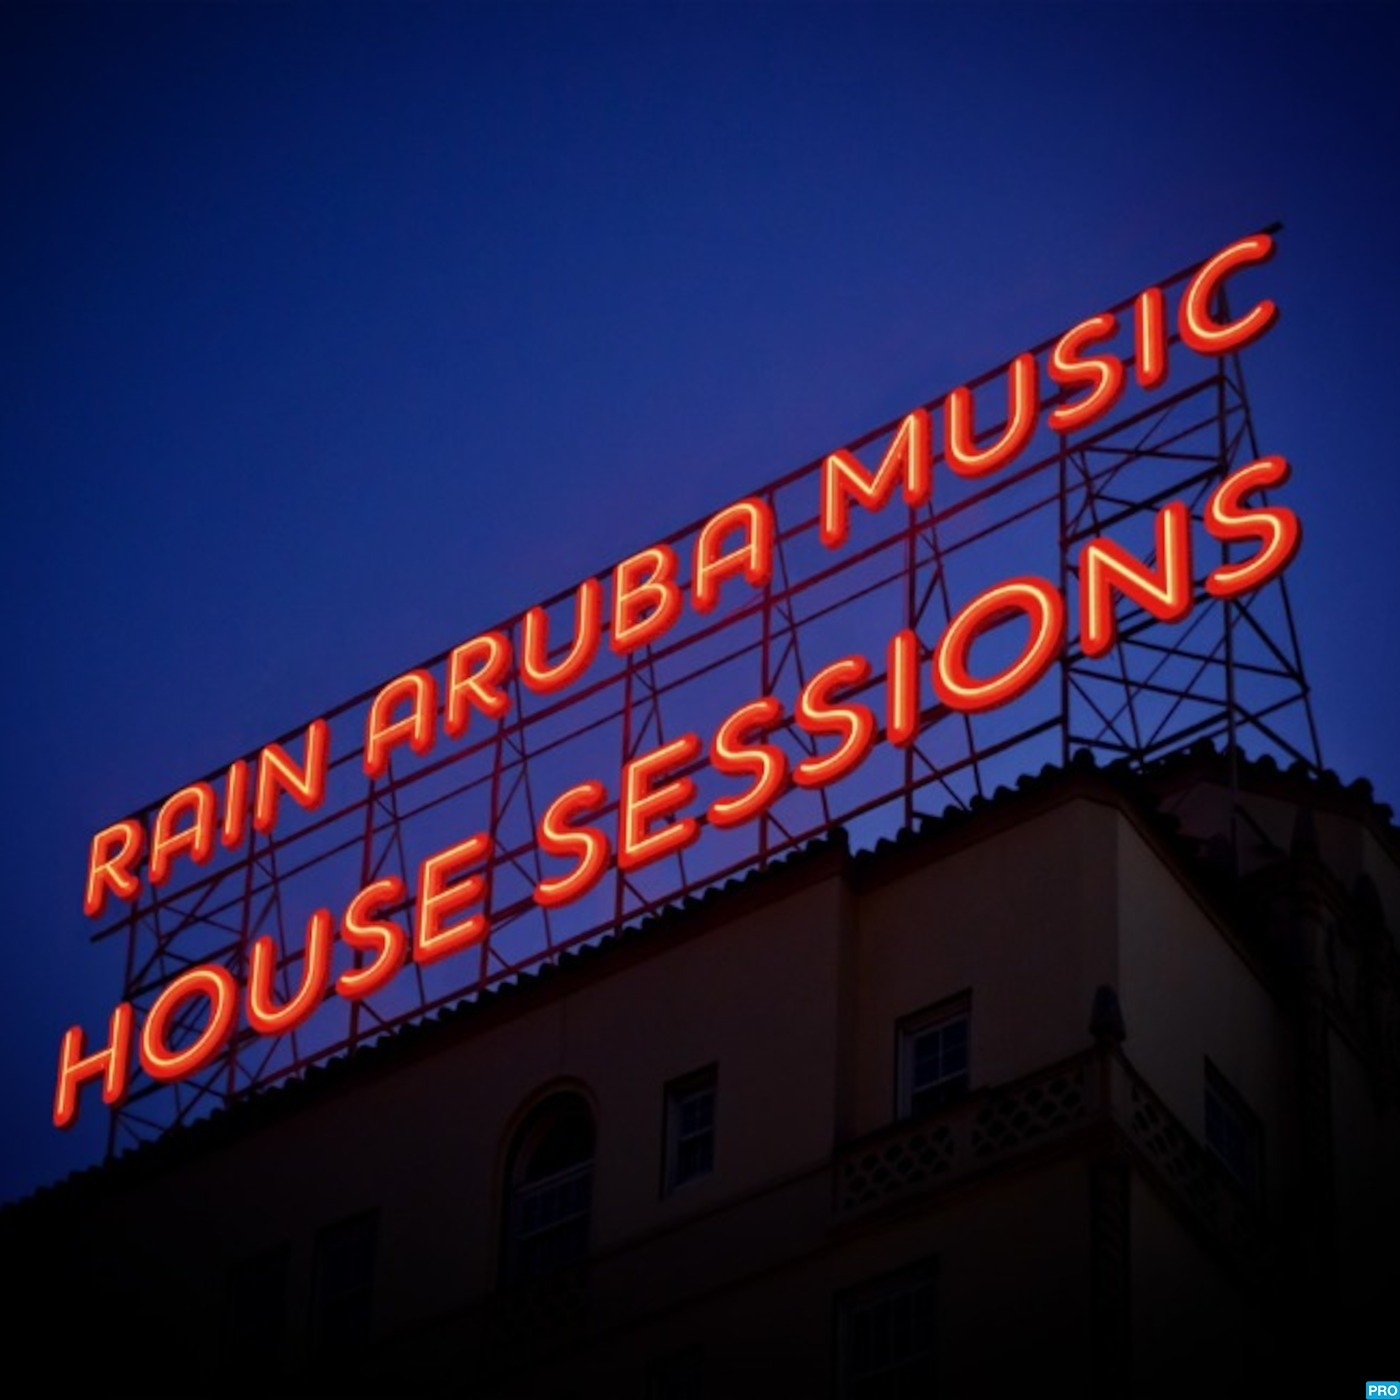 Rain Aruba's Podcast